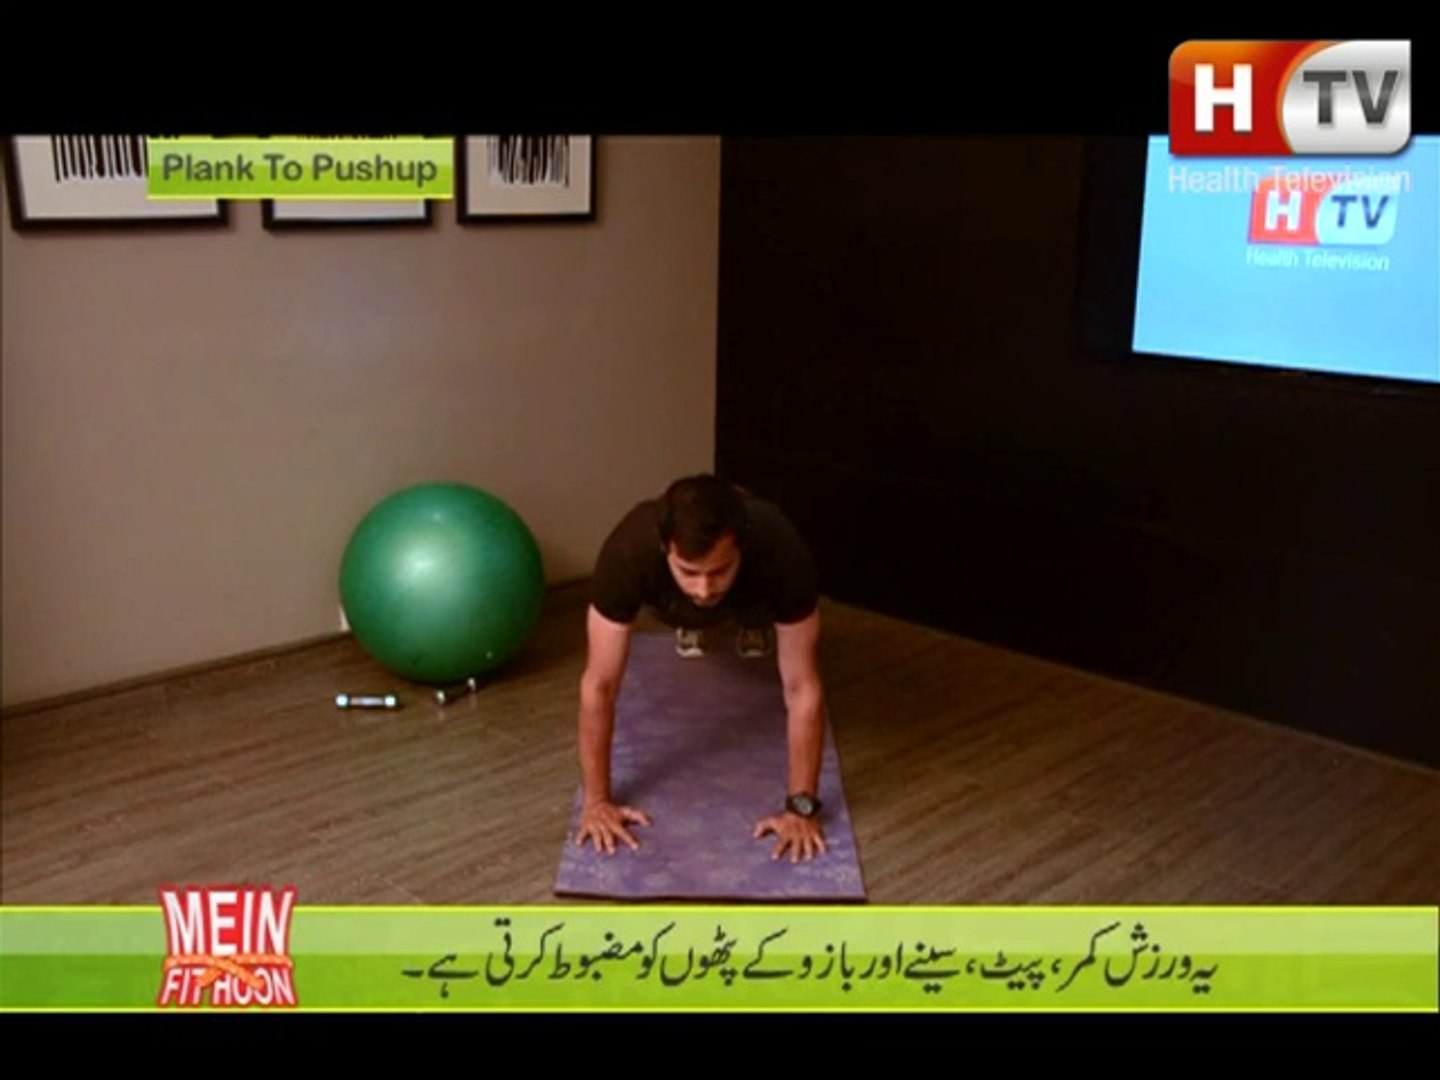 Plank To Pushup - HTV Body Weight Workout - Mein Fit Hoon